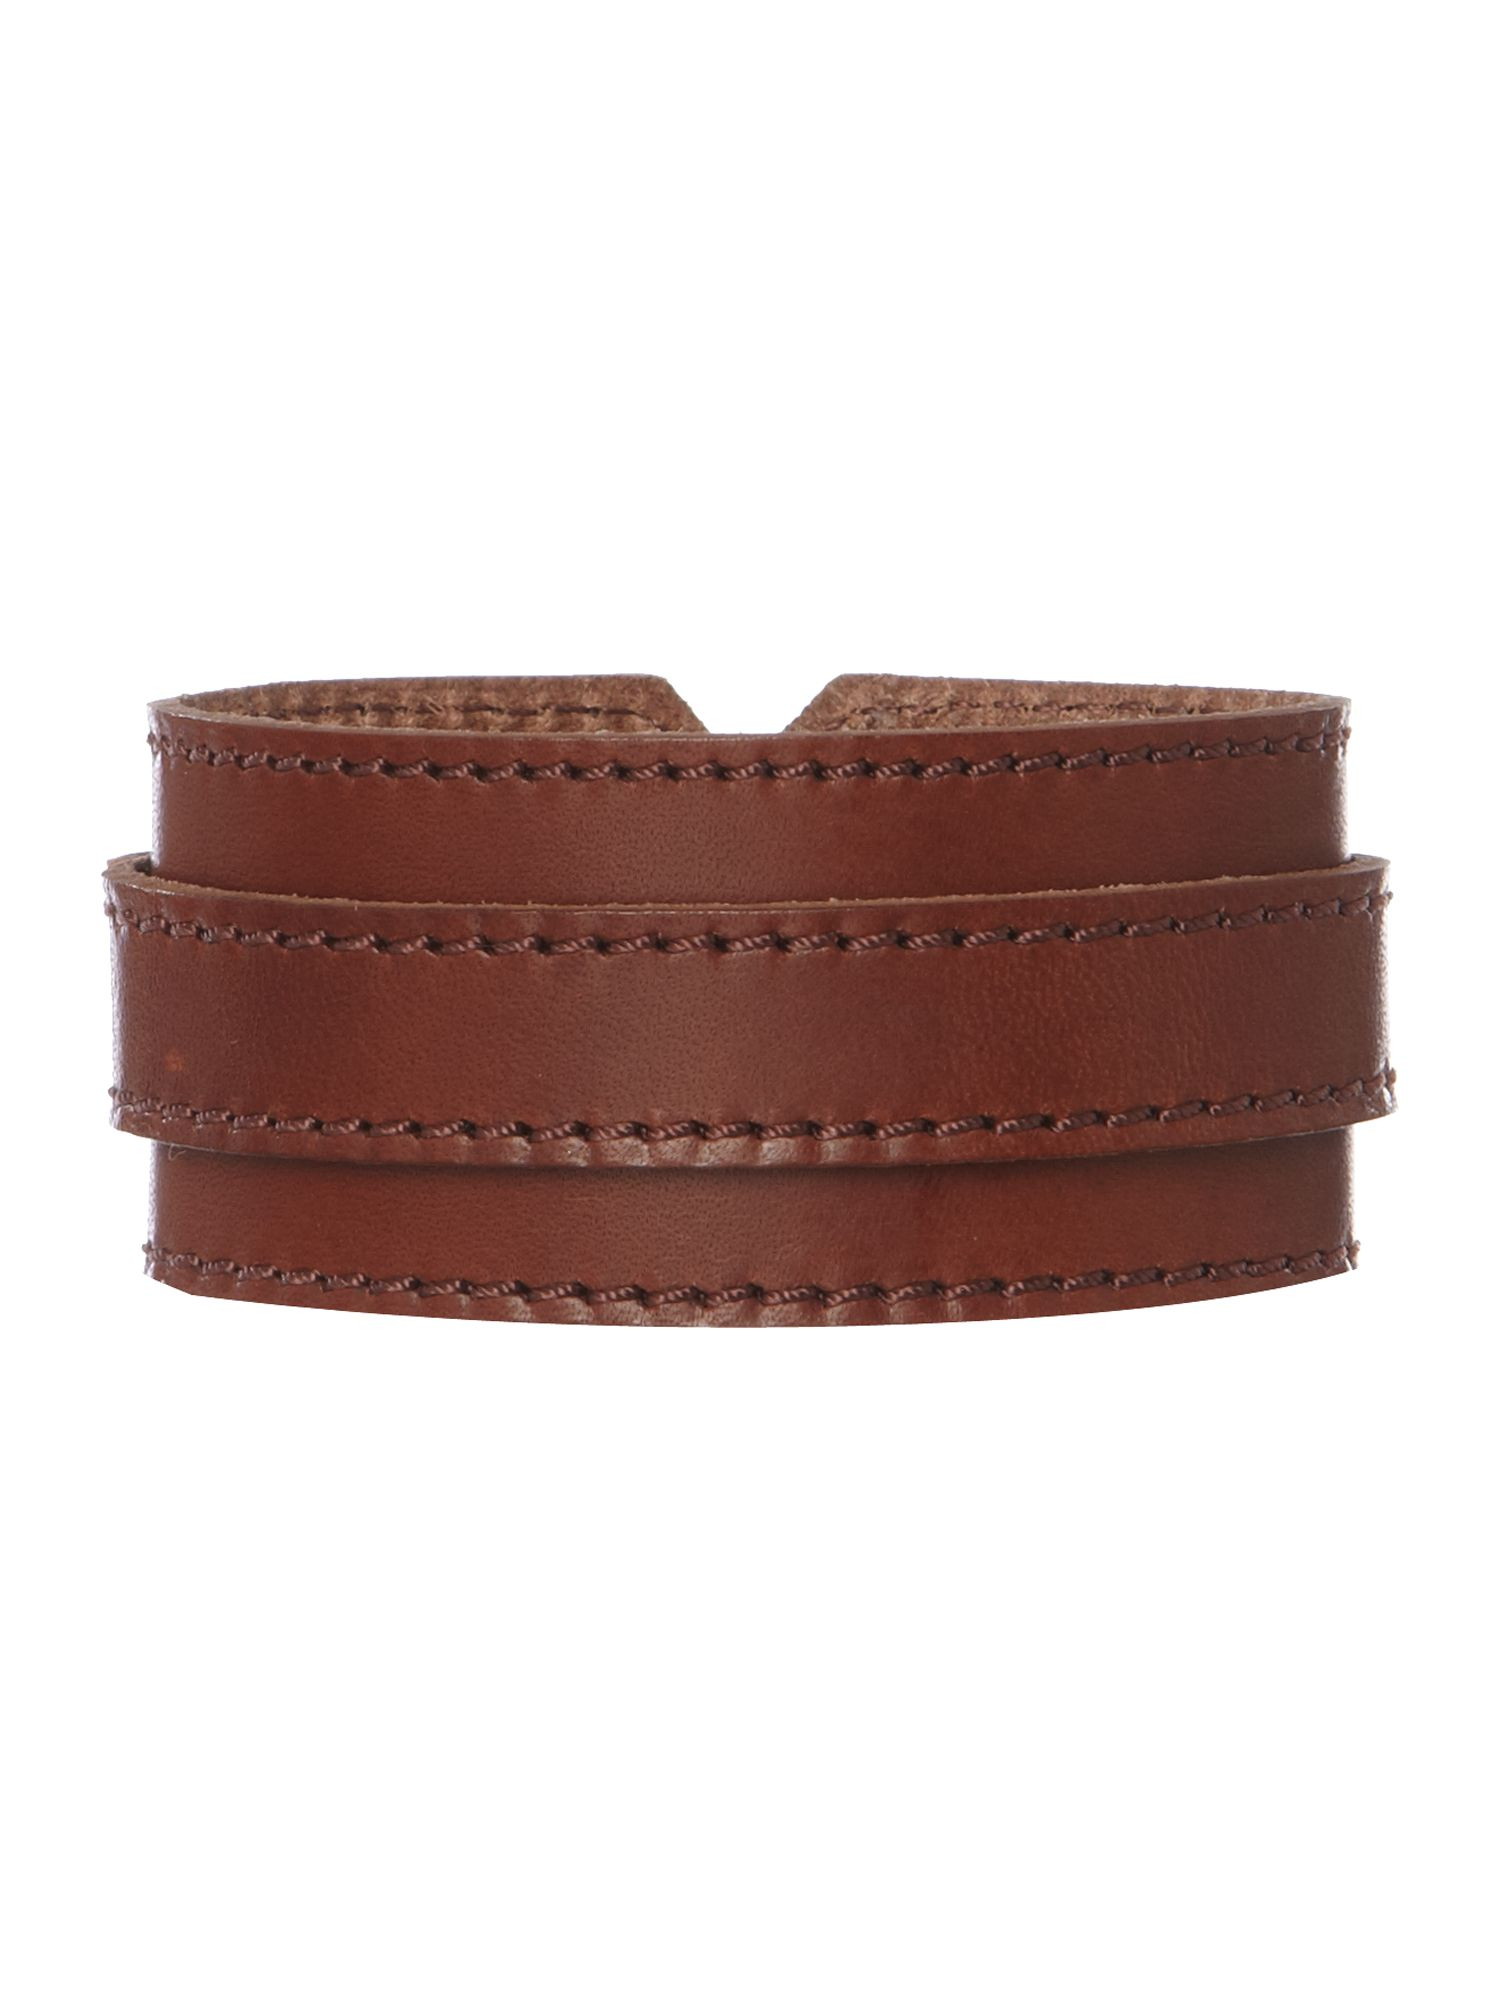 Baldoon leather cuff bracelet